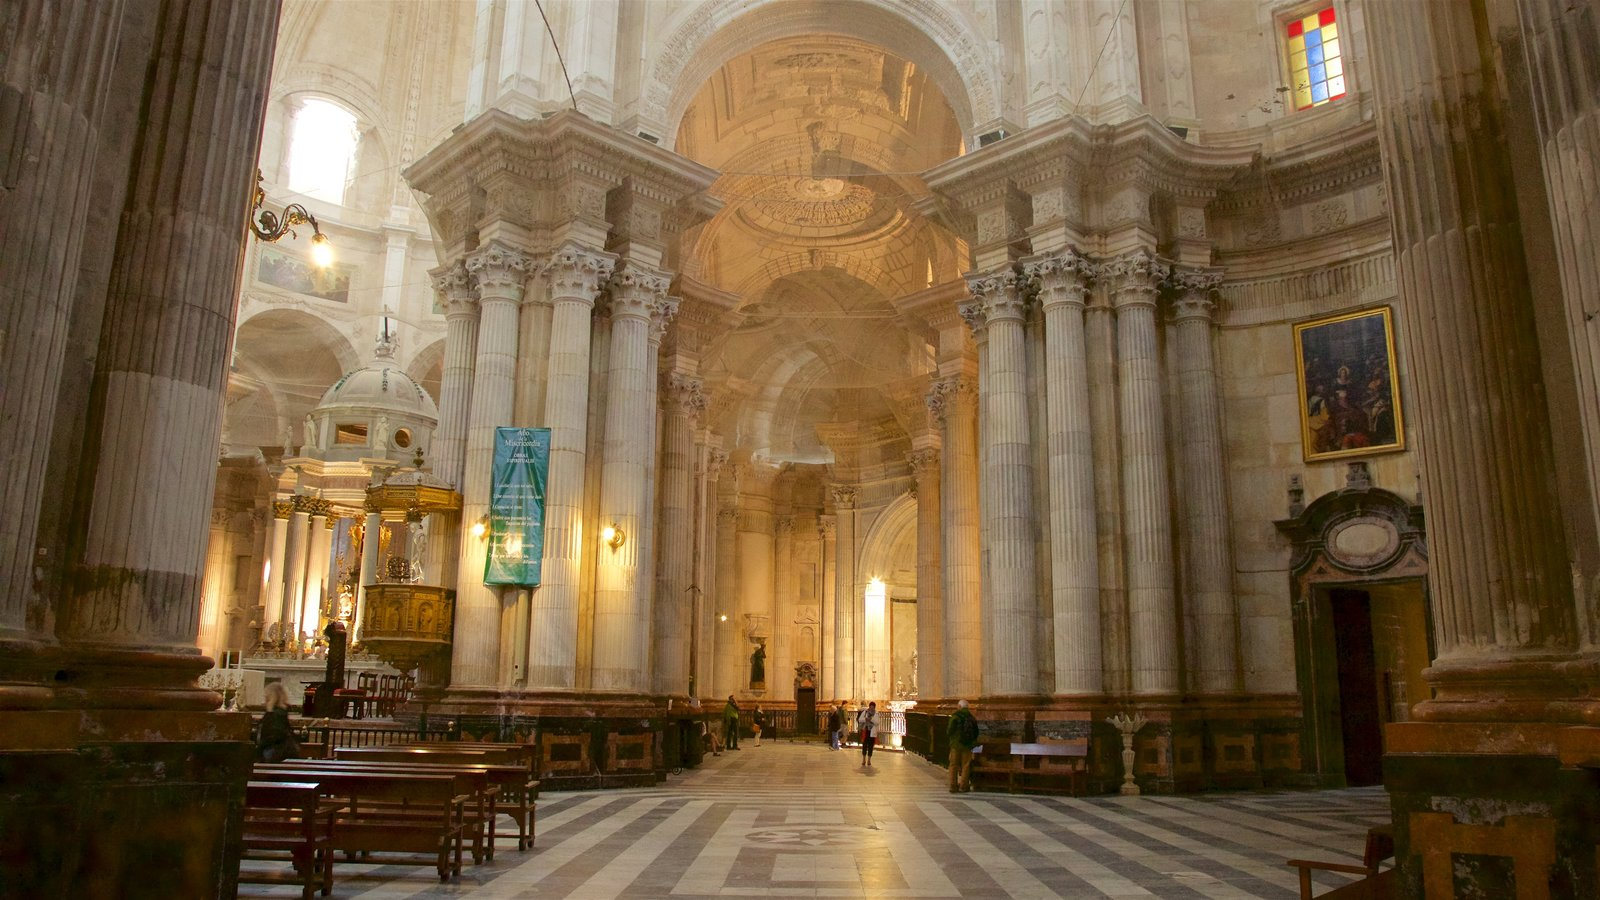 Catedral Nueva featuring a church or cathedral and interior views